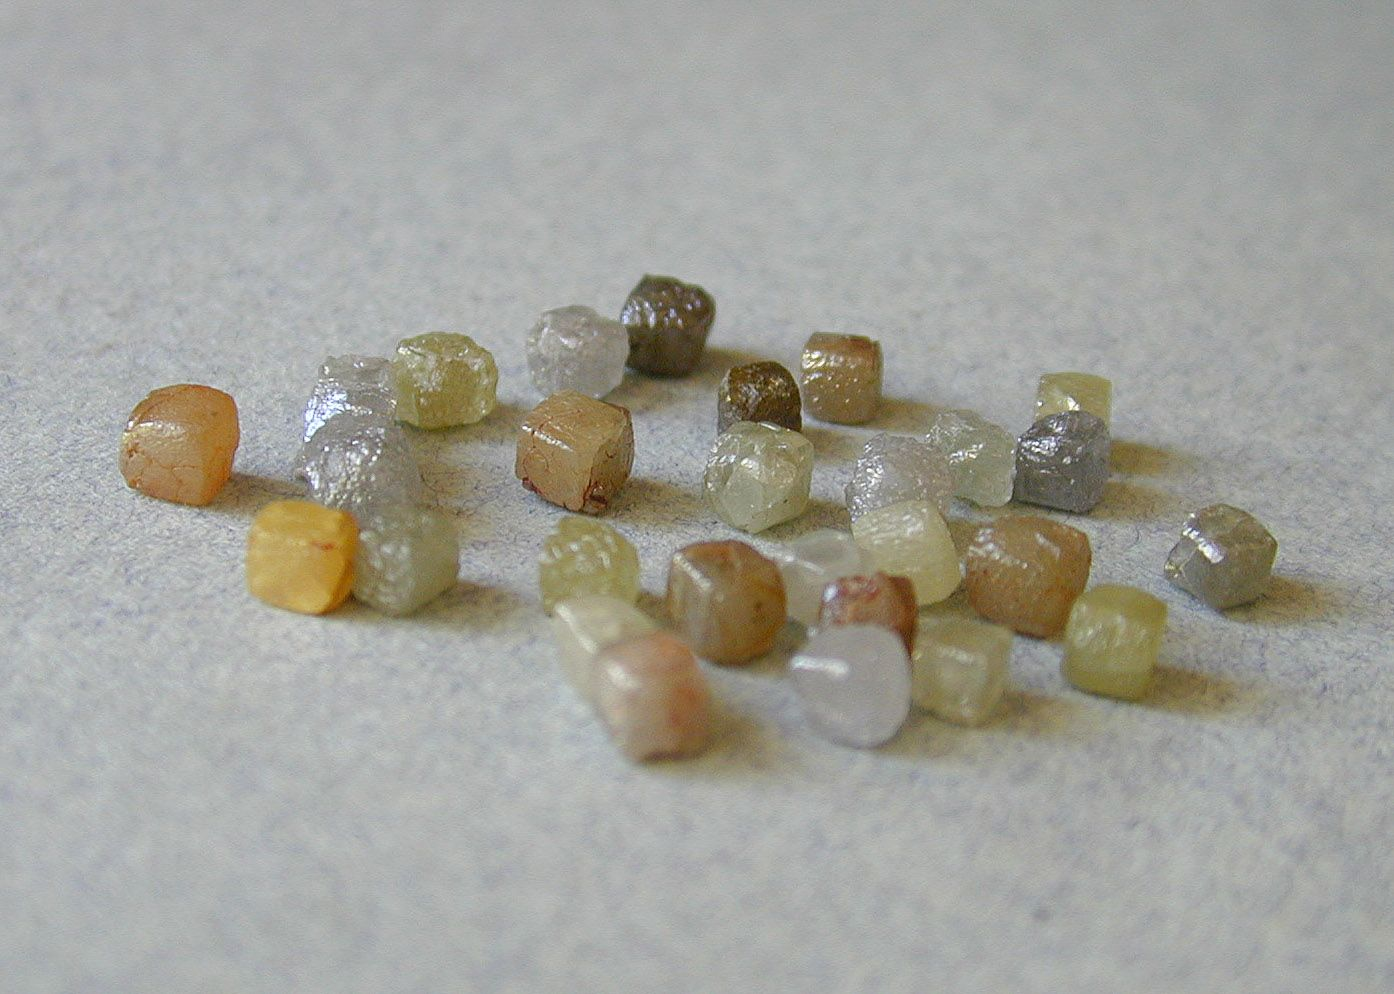 Raw Rough Diamond And Quotes: Rough Diamonds As They Are Found In Nature! Www